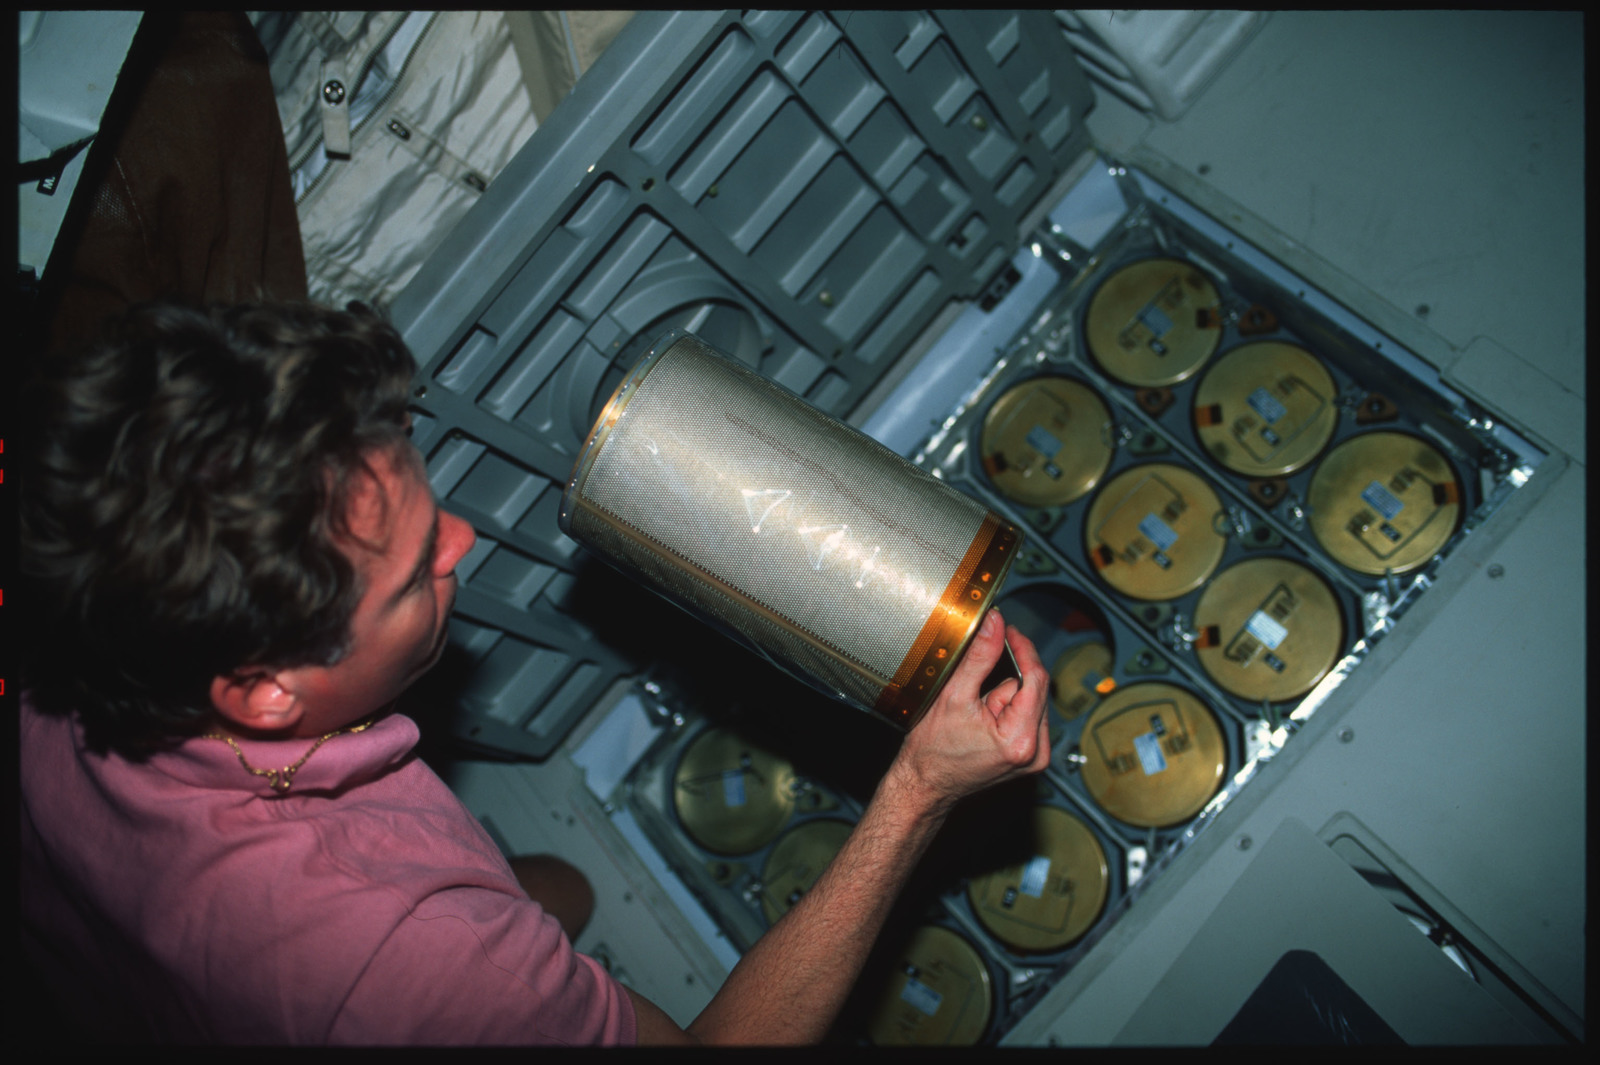 S45-41-017 - STS-045 - STS-45 crewmembers switch out LiOH canisters